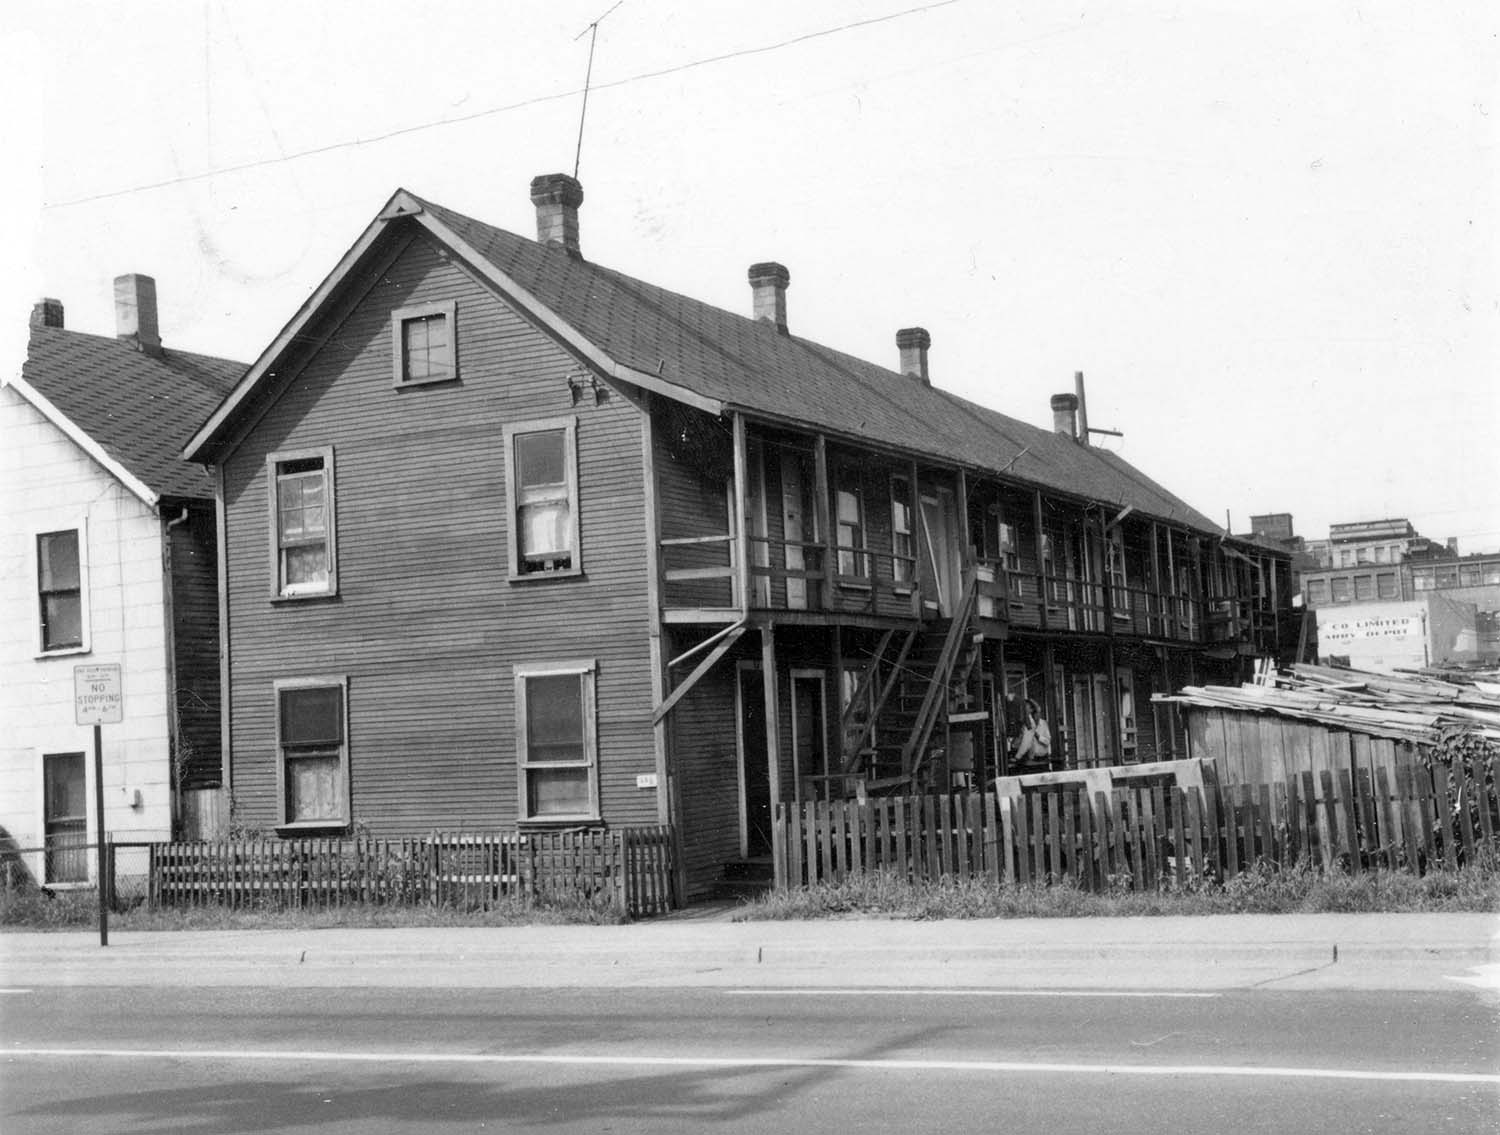 259 Prior Street. Chou Doely Gam cabins front, 1968. Reference code COV-S168-: CVA 203-28